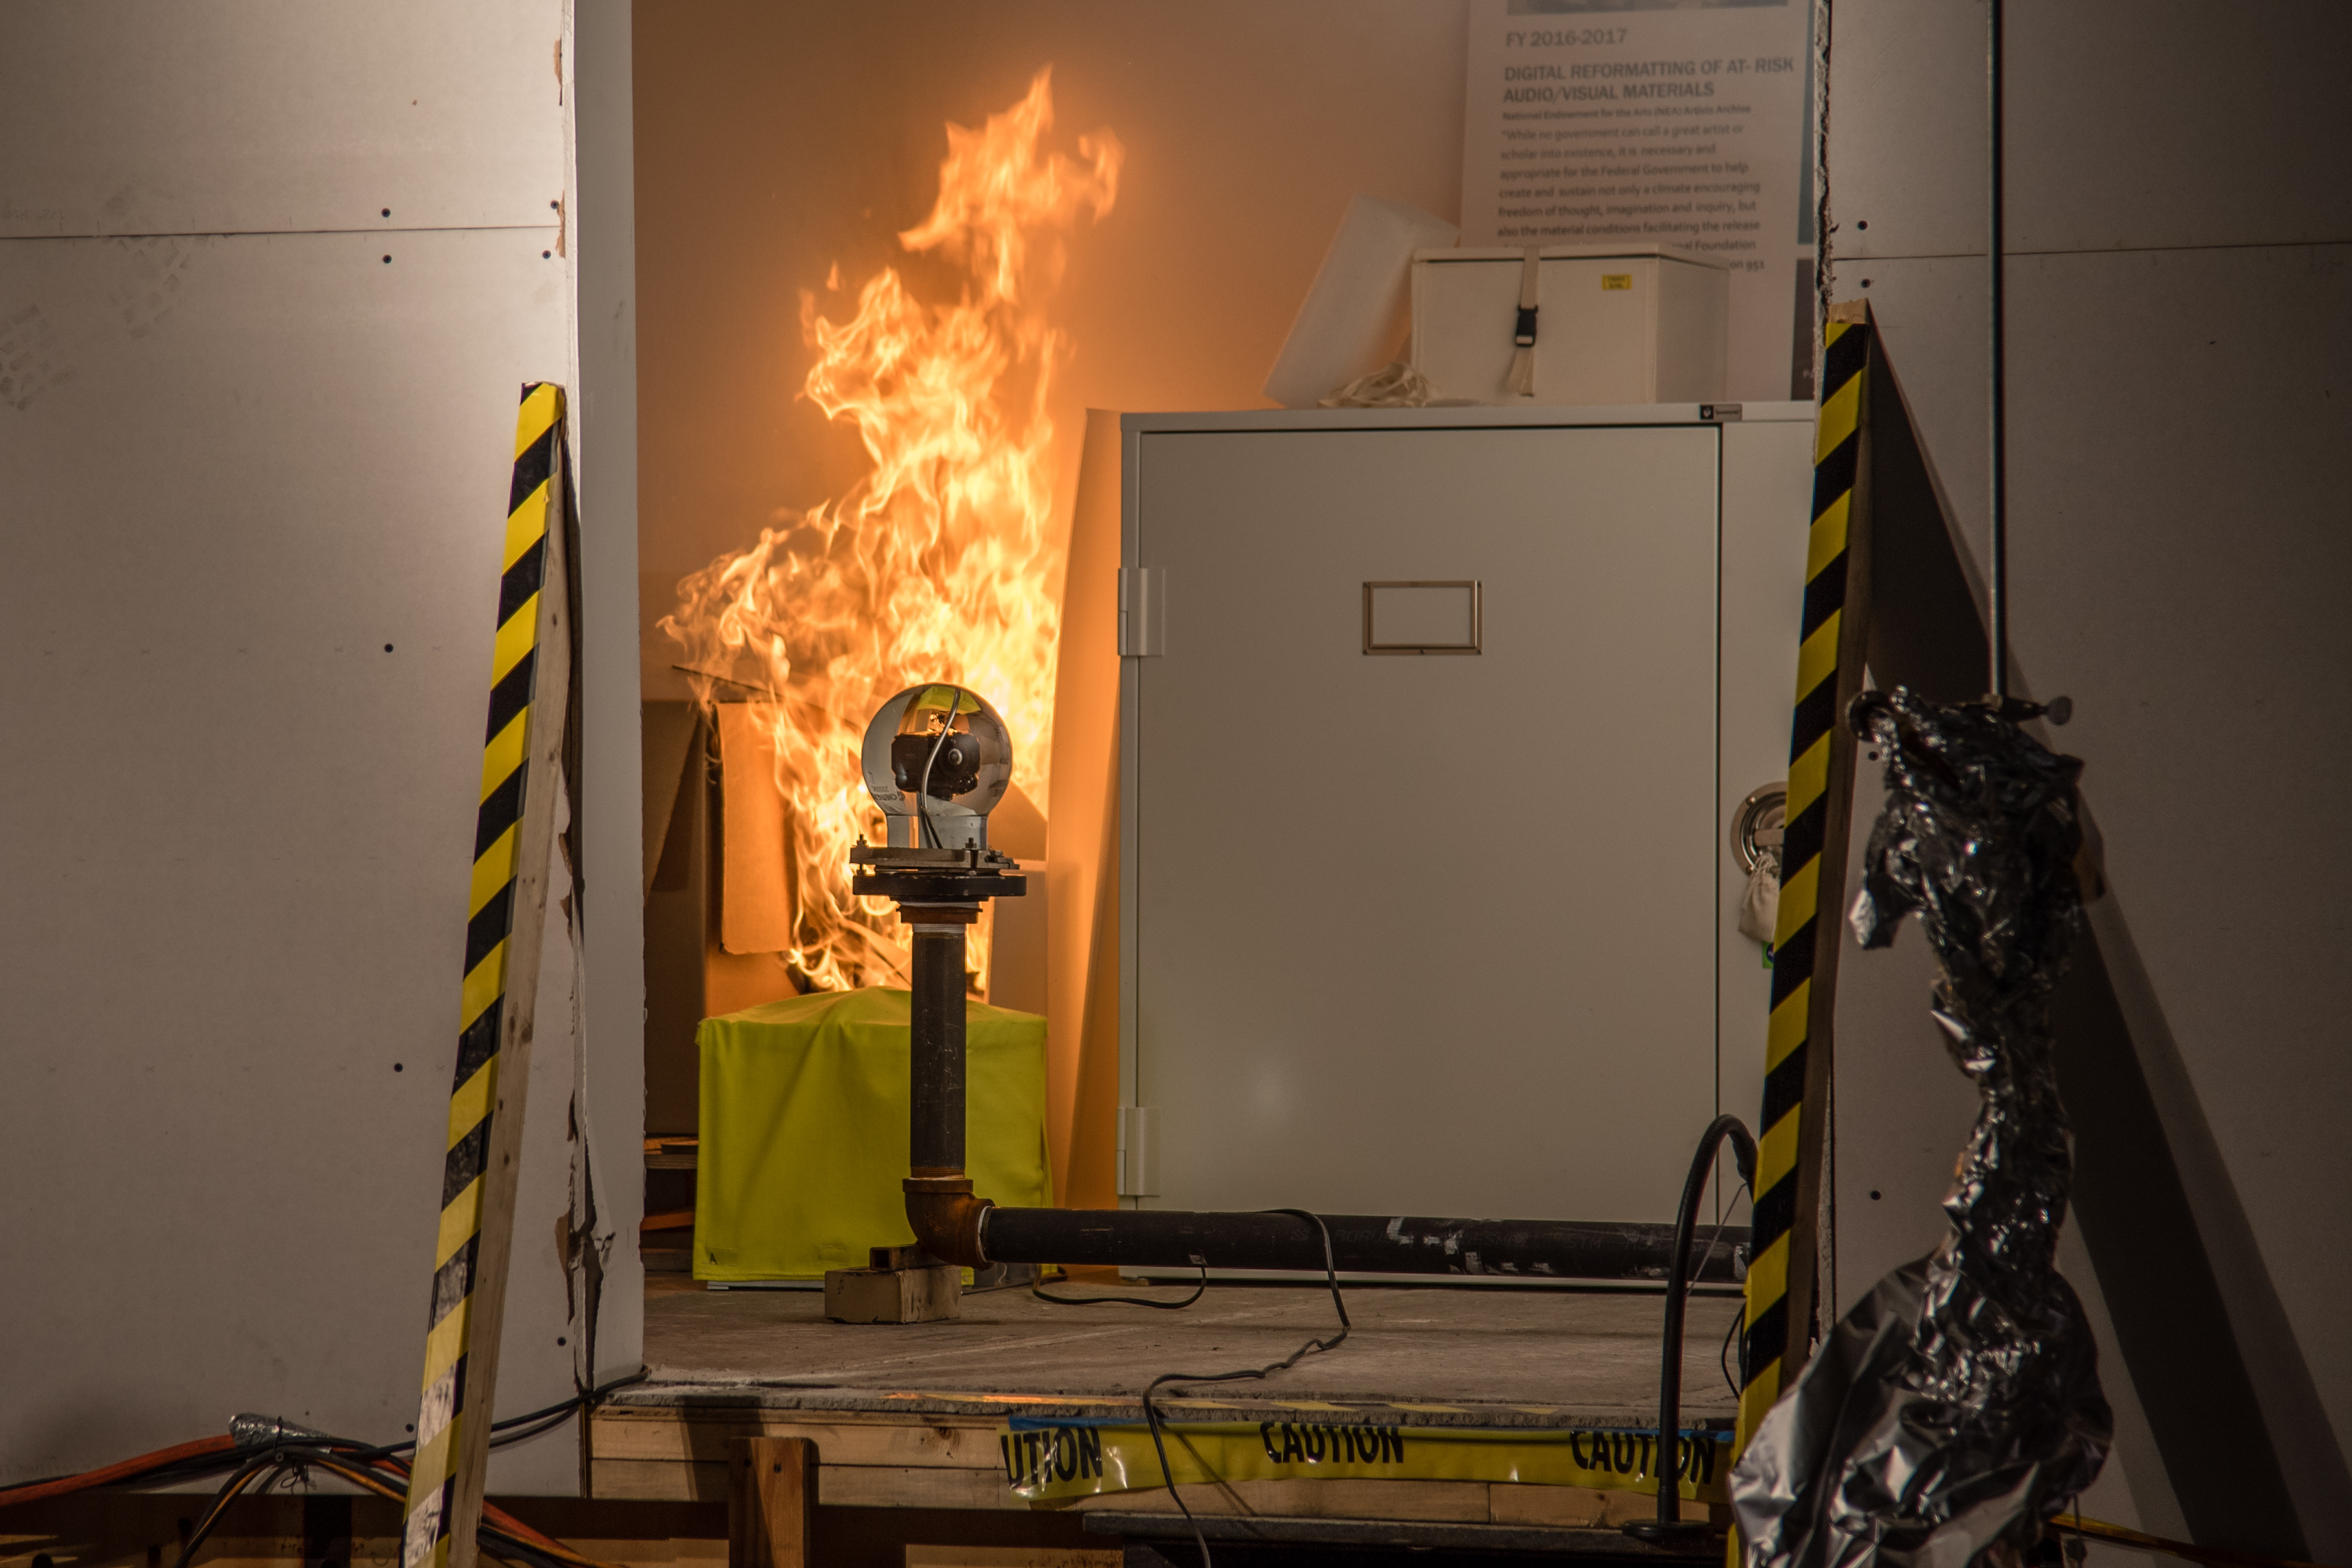 view through the doorway of the simulated storage room. The fire grows as a video camera in the room looks on.